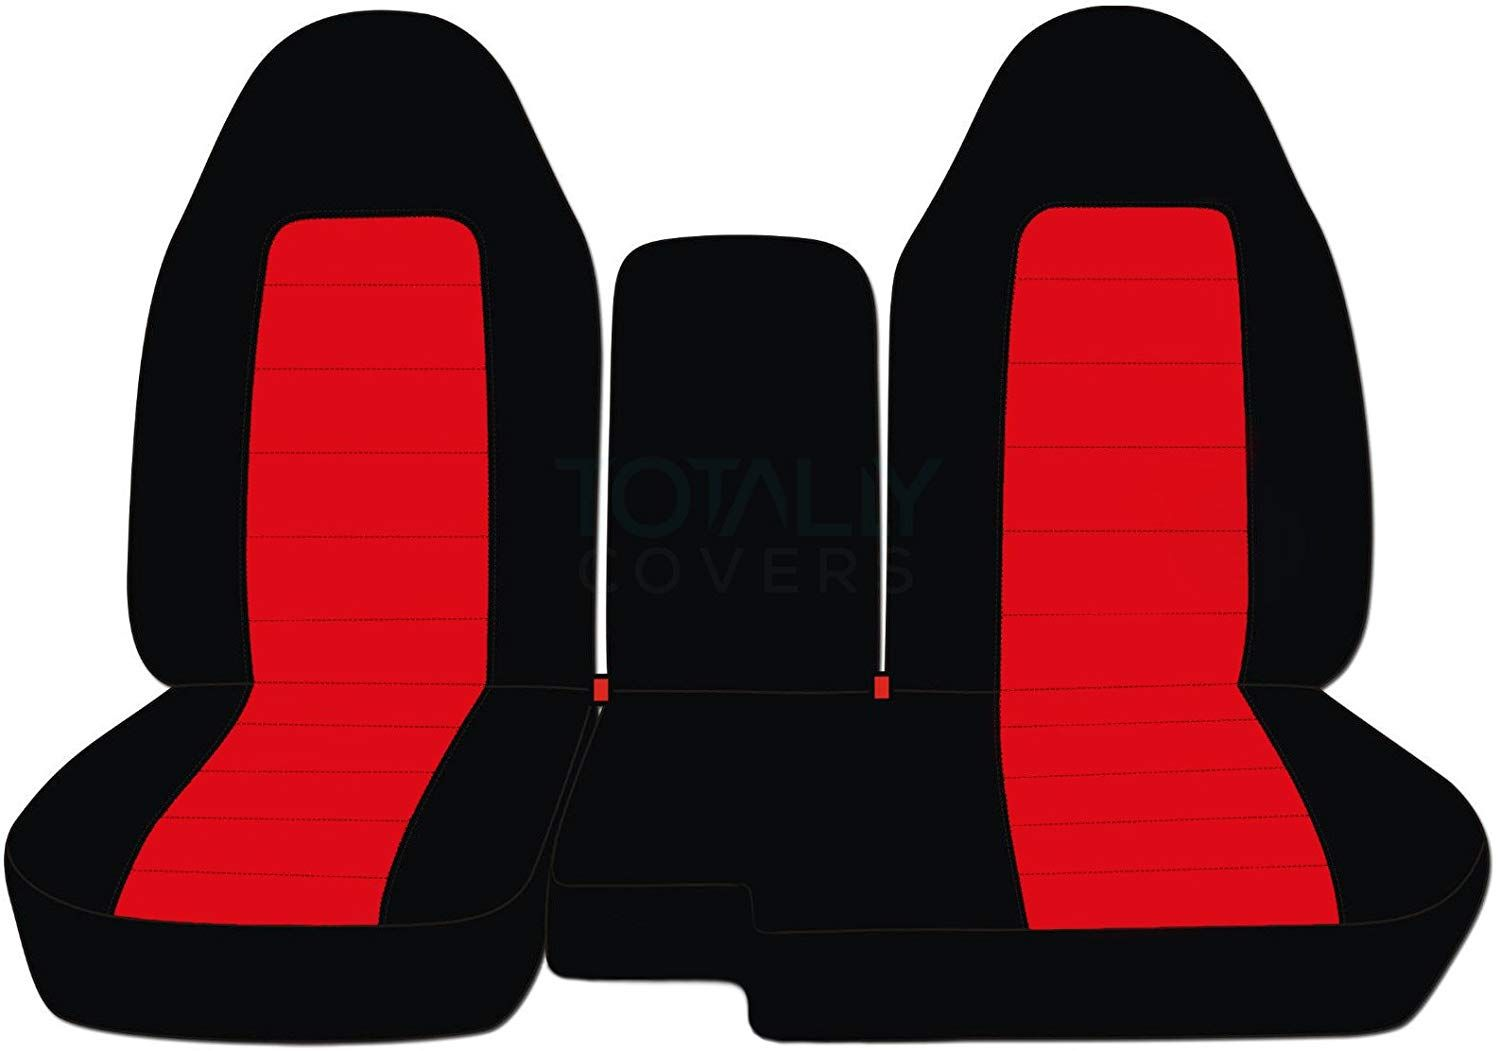 Designcovers 1998 2003 Ford Ranger Mazda B Series Two Tone Truck Seat Covers 60 40 Split Bench Center Cons Ford Ranger Truck Seat Covers Automotive Solutions